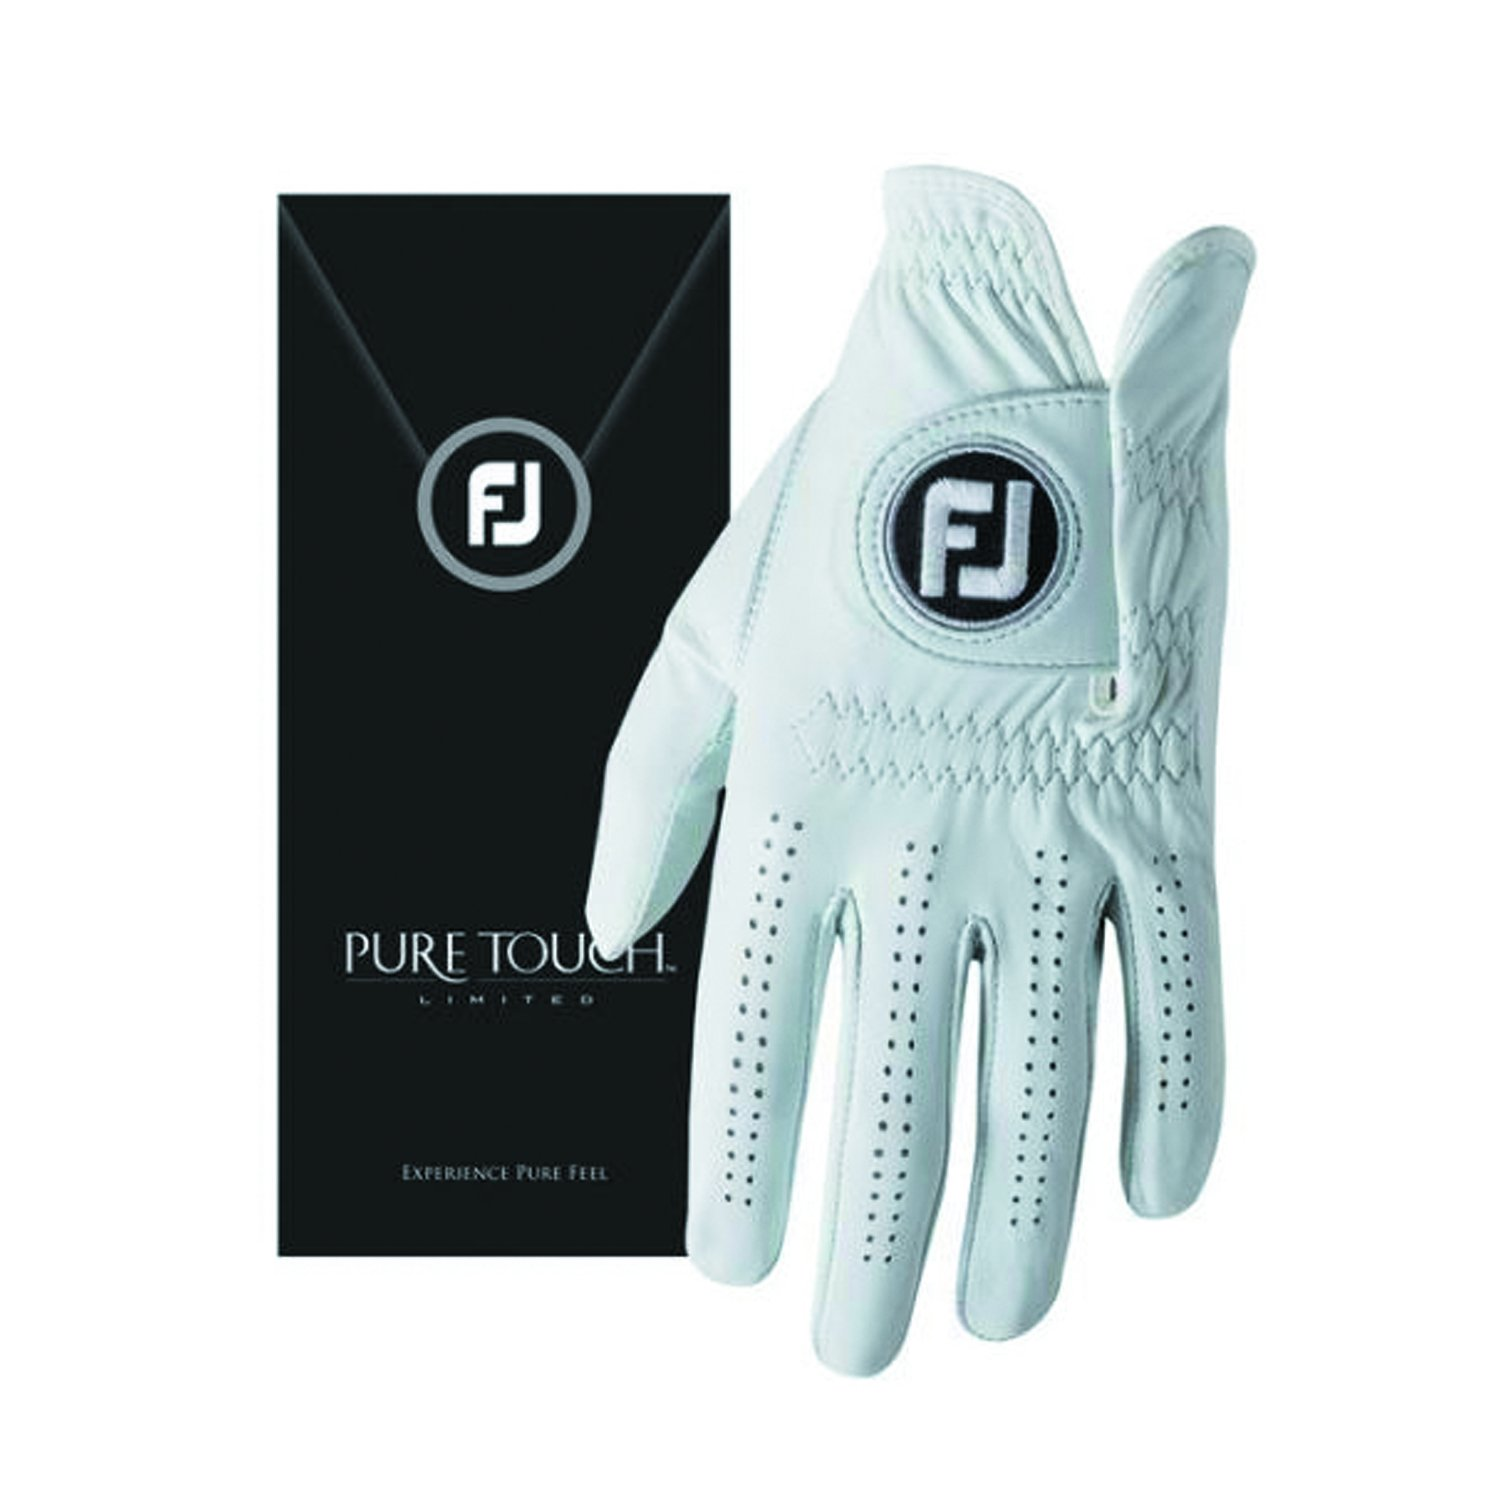 FootJoy New Pure Touch Limited Edition Men s Golf Glove – Worn on Left Hand